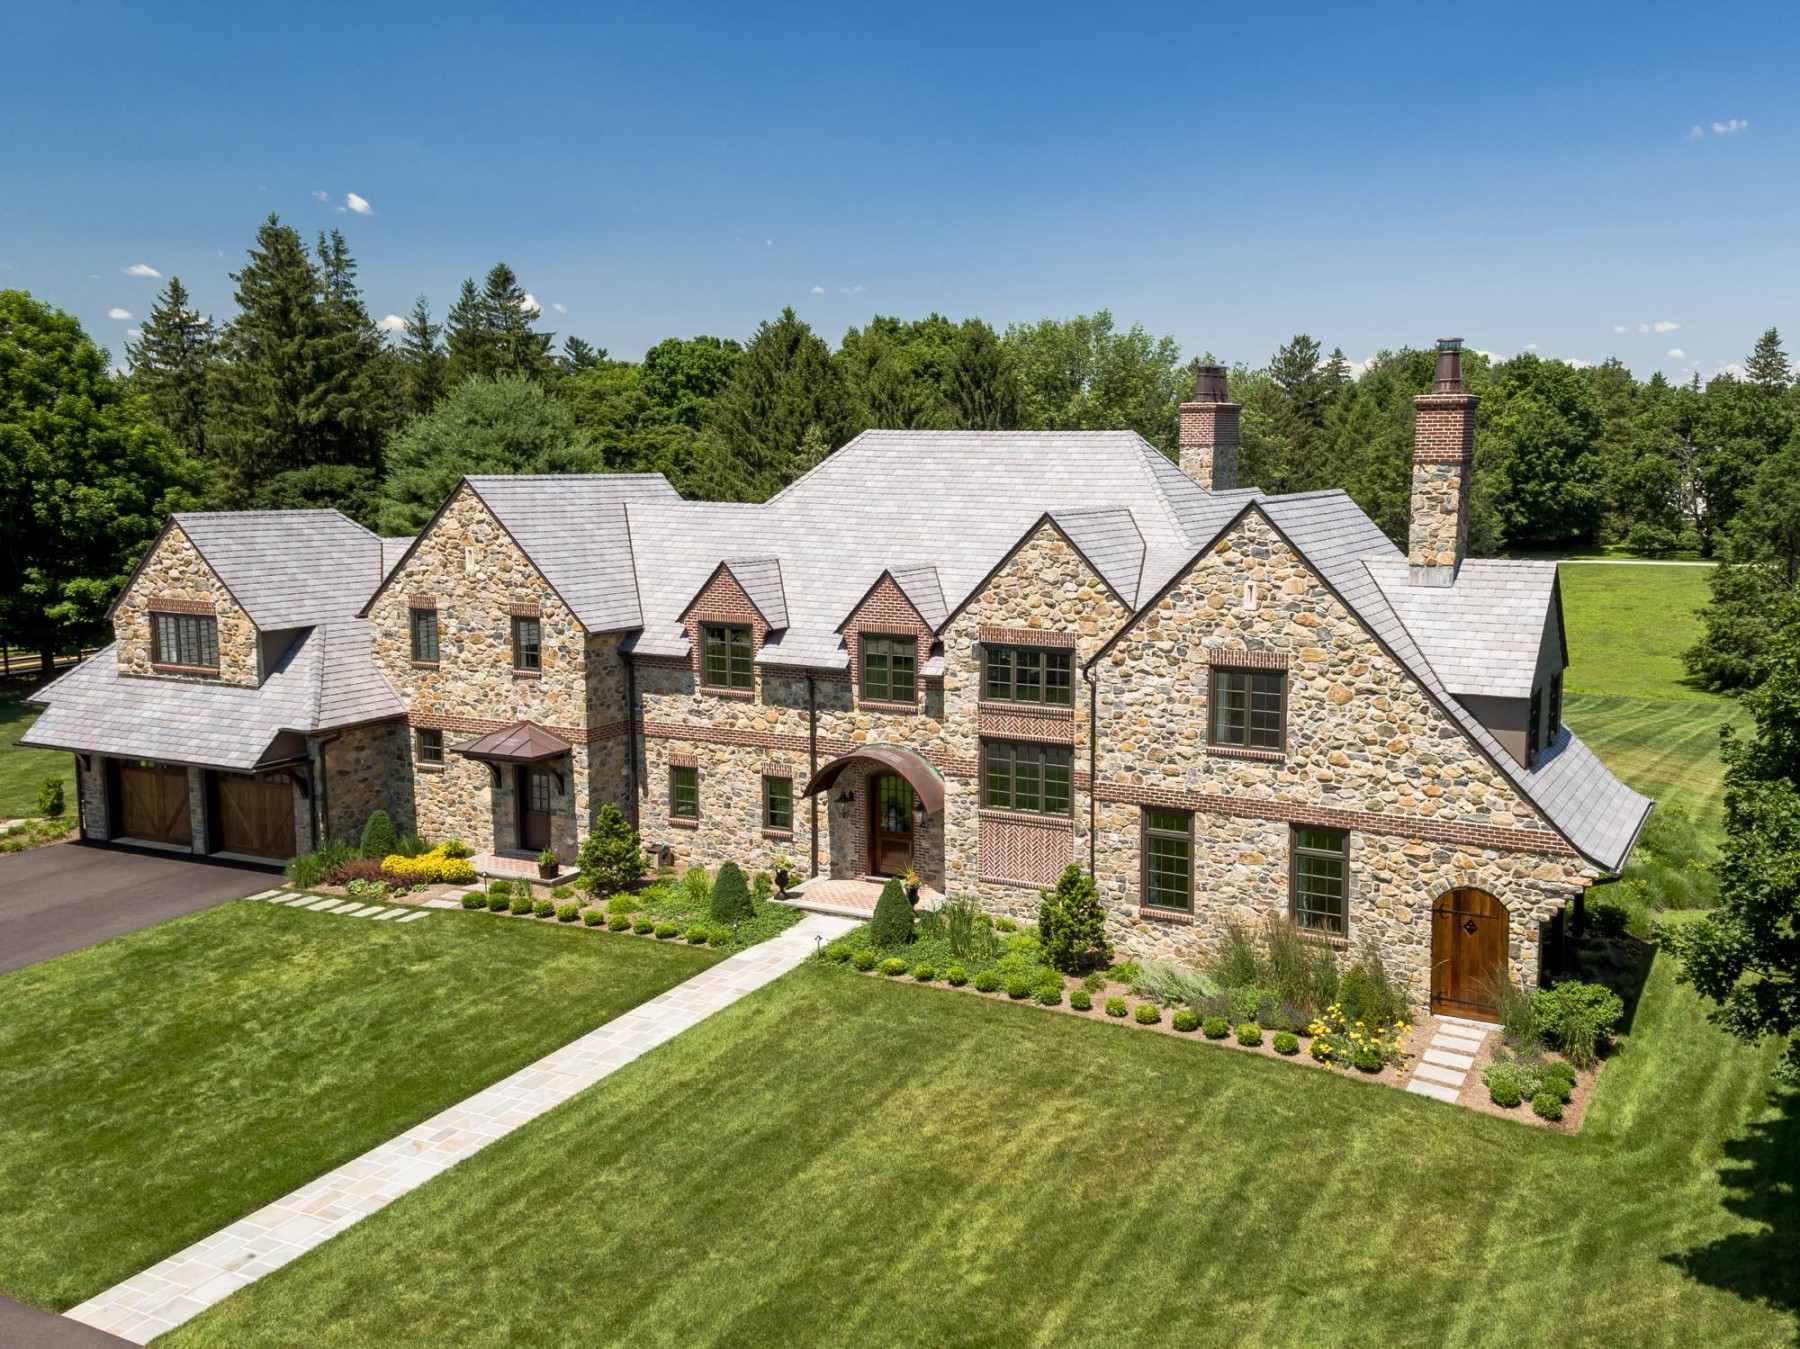 English Country House Inspired Greenville Home front elevation drone